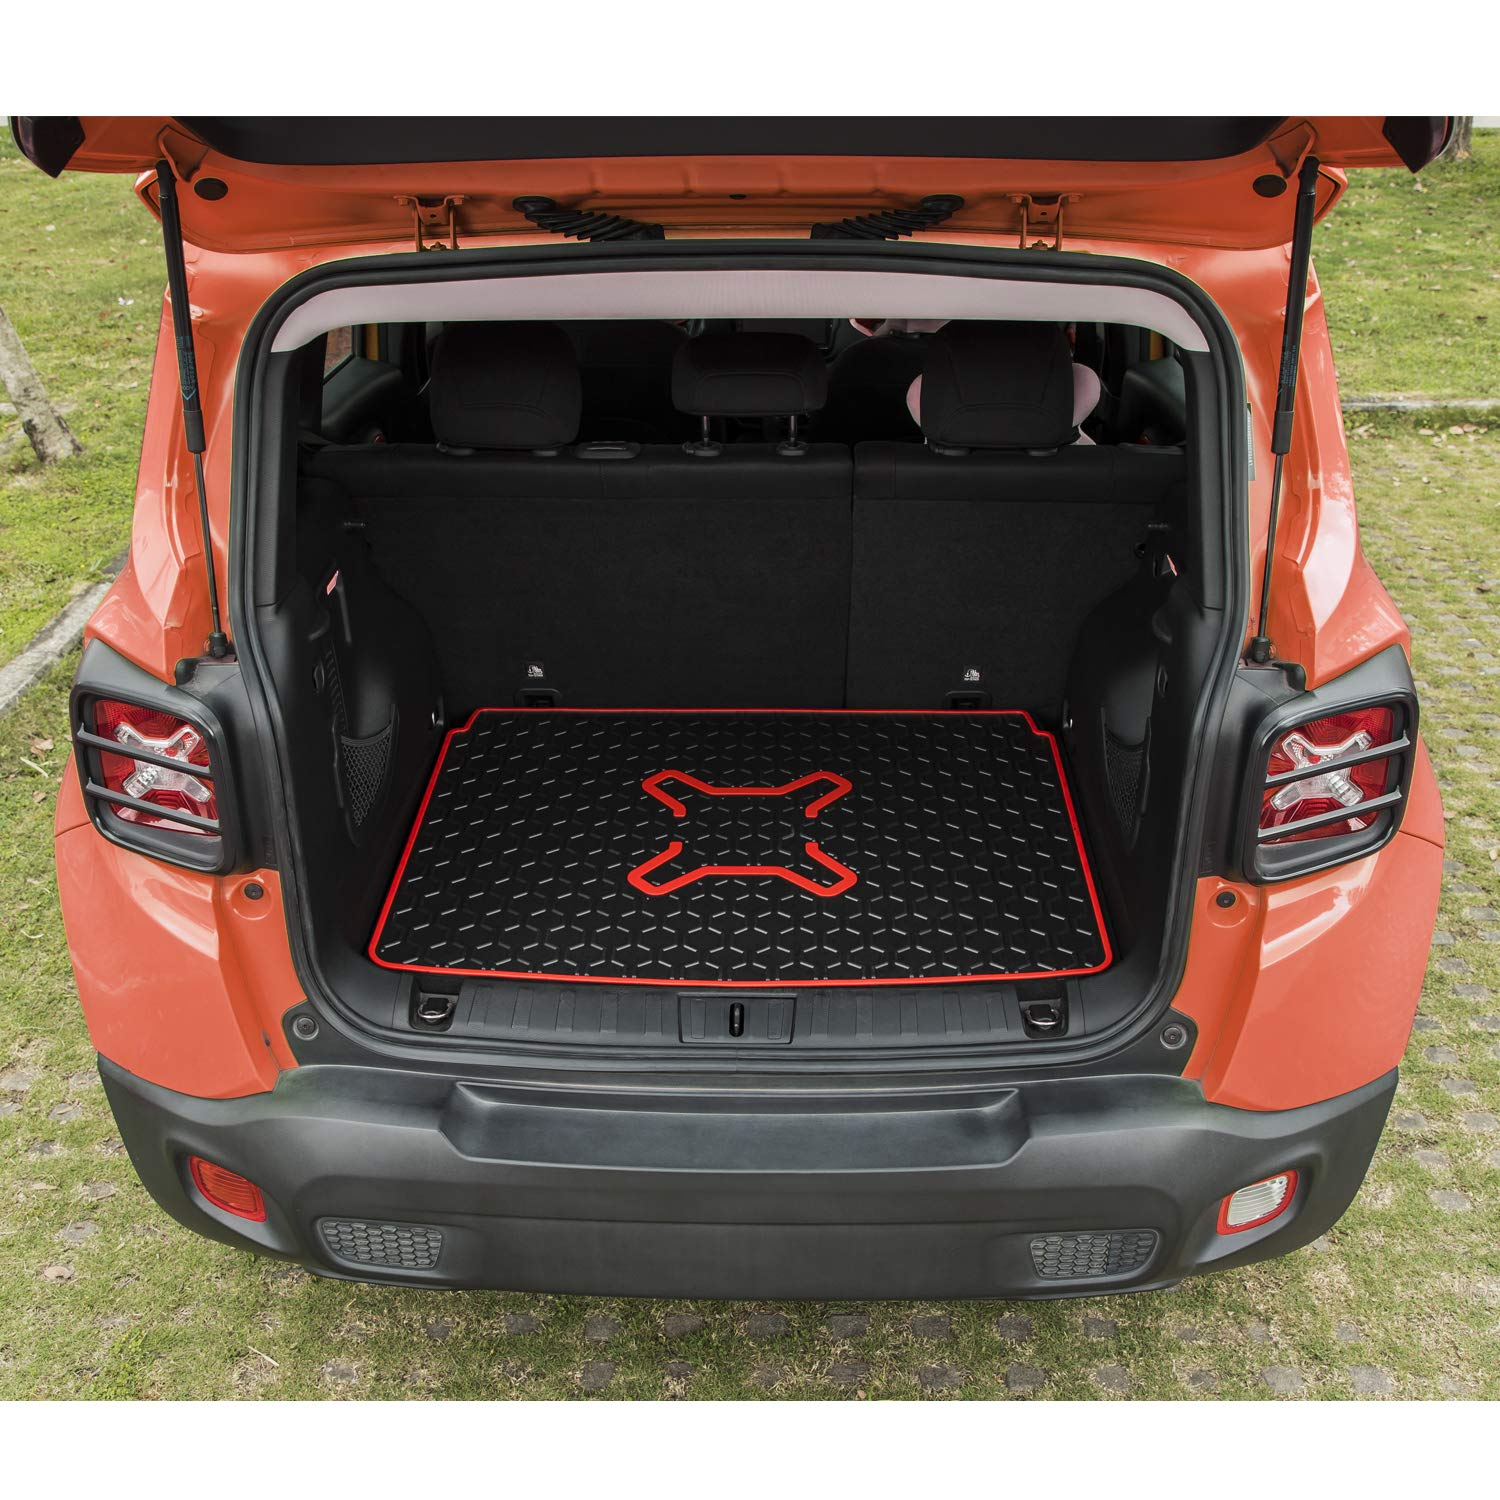 HD-Mart Car Floor Mats Custom Fit for Jeep Renegade 2015 2016 2017 2018 2019 2020 Black Orange Rubber Car Floor Liners Set All Weather Protection Heavy Duty Odorless